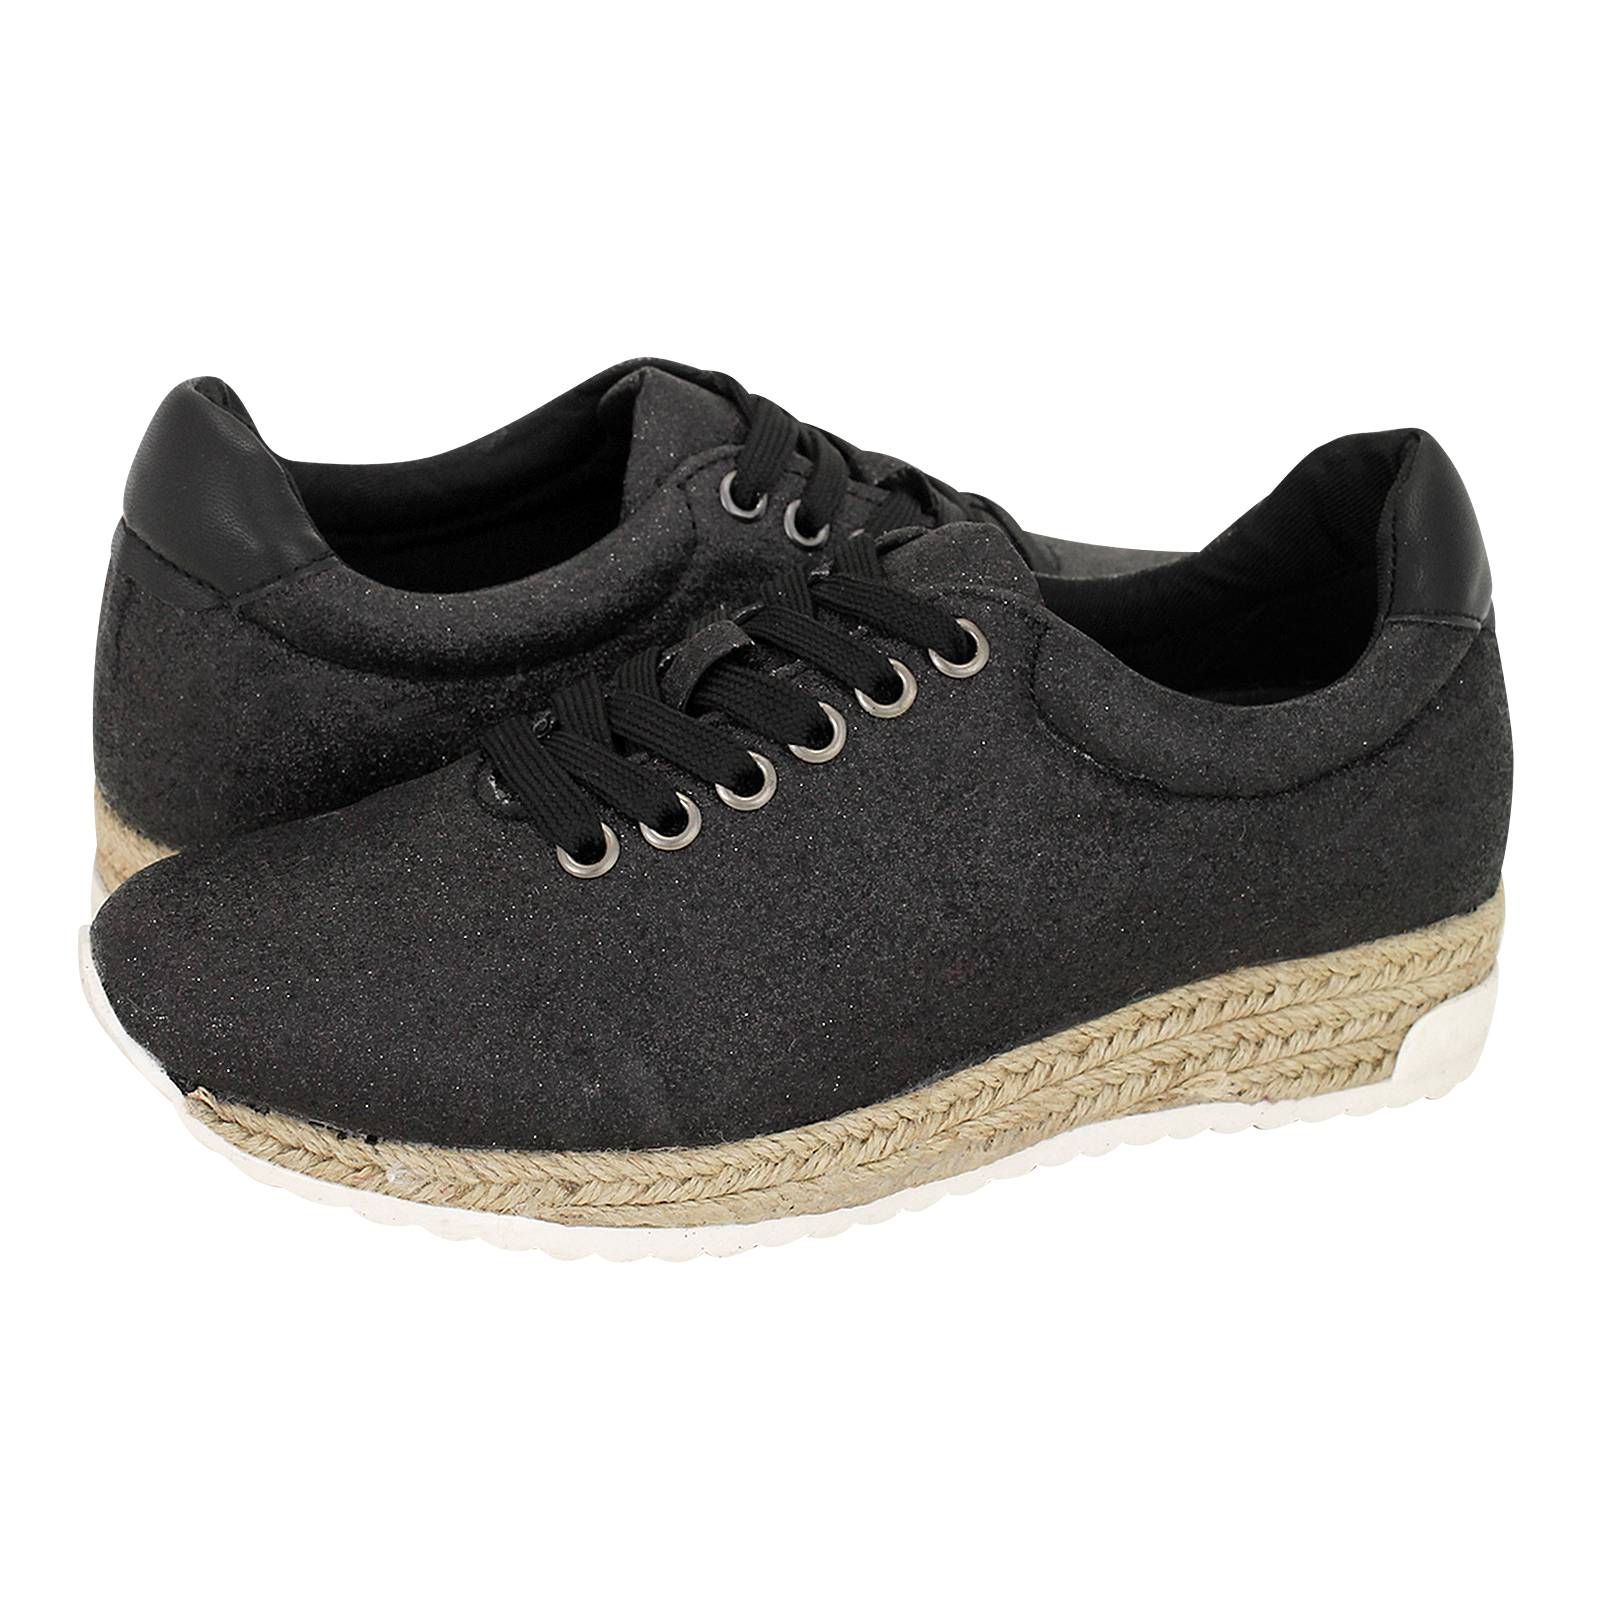 e8ba58a9bce7 Comps - Tata Women s casual shoes made of synthetic - Gianna Kazakou ...